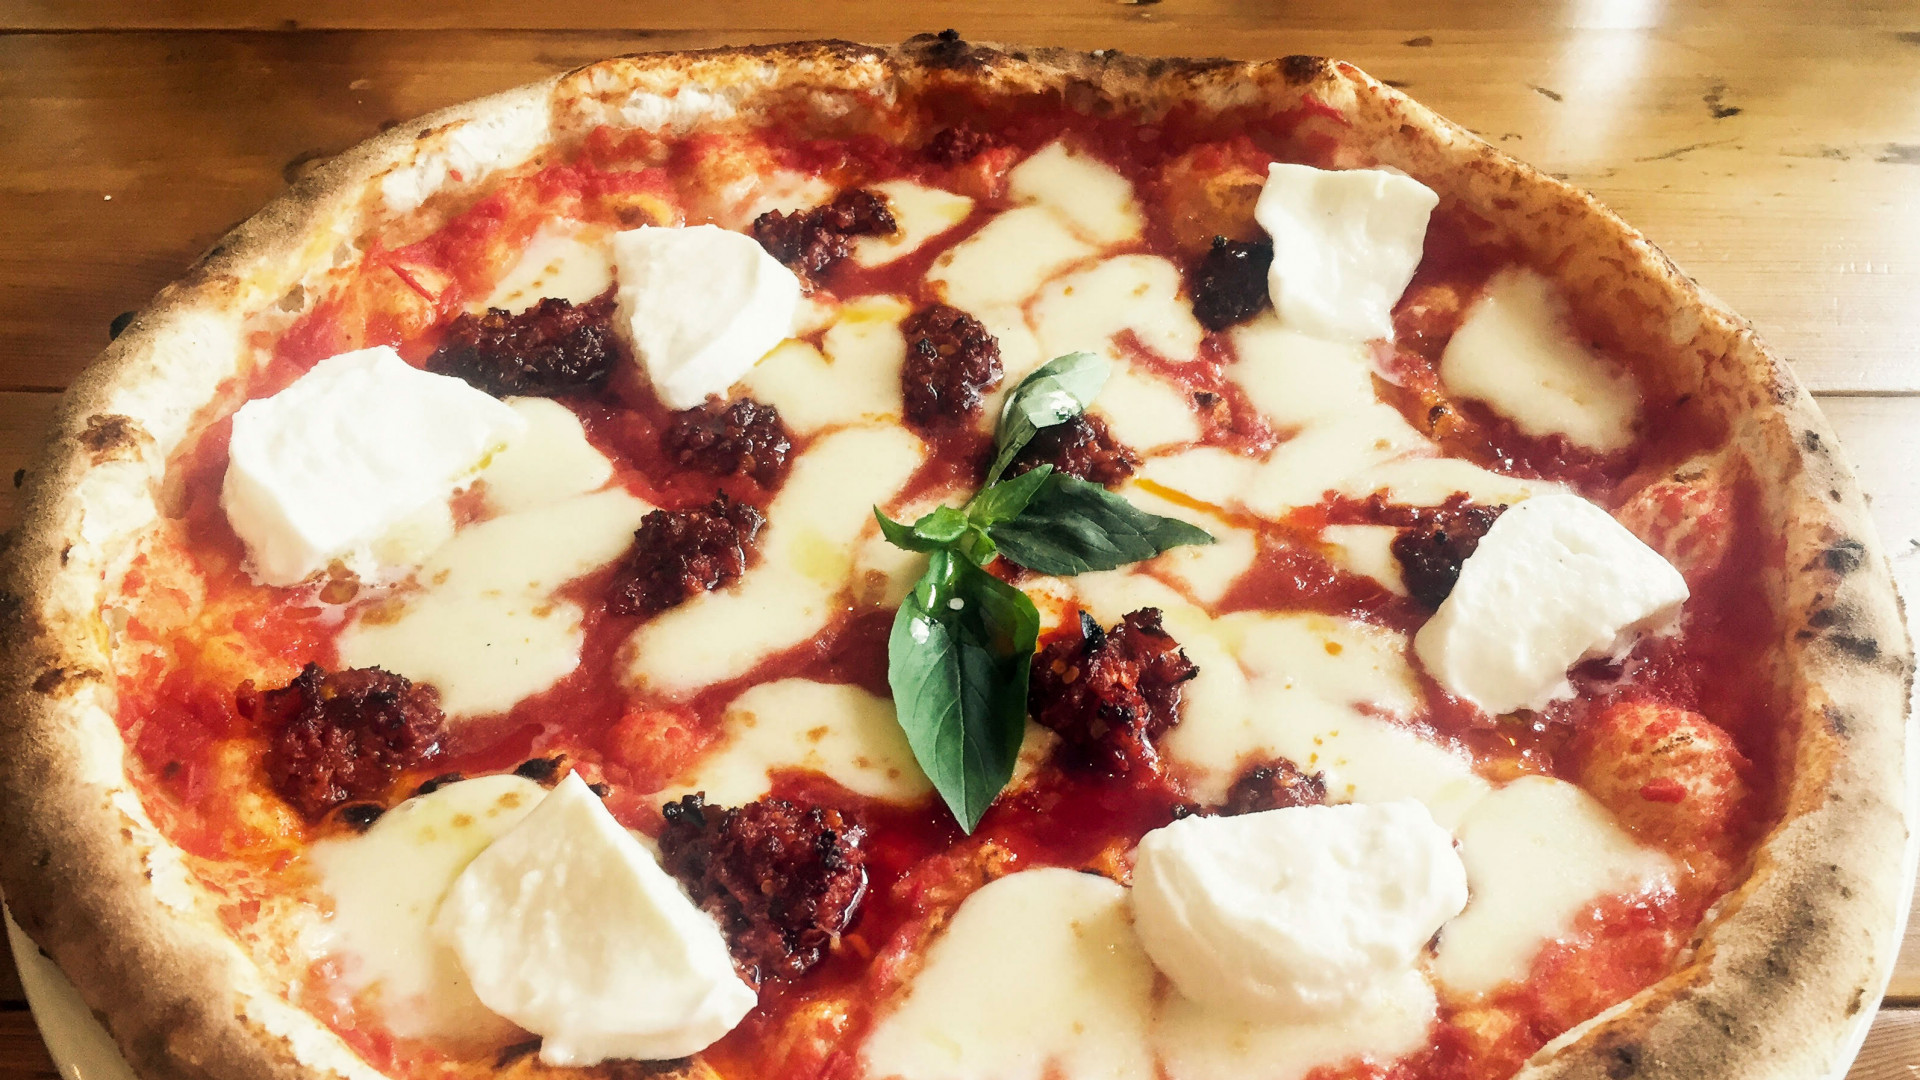 Nduja pizza at Zia Lucia